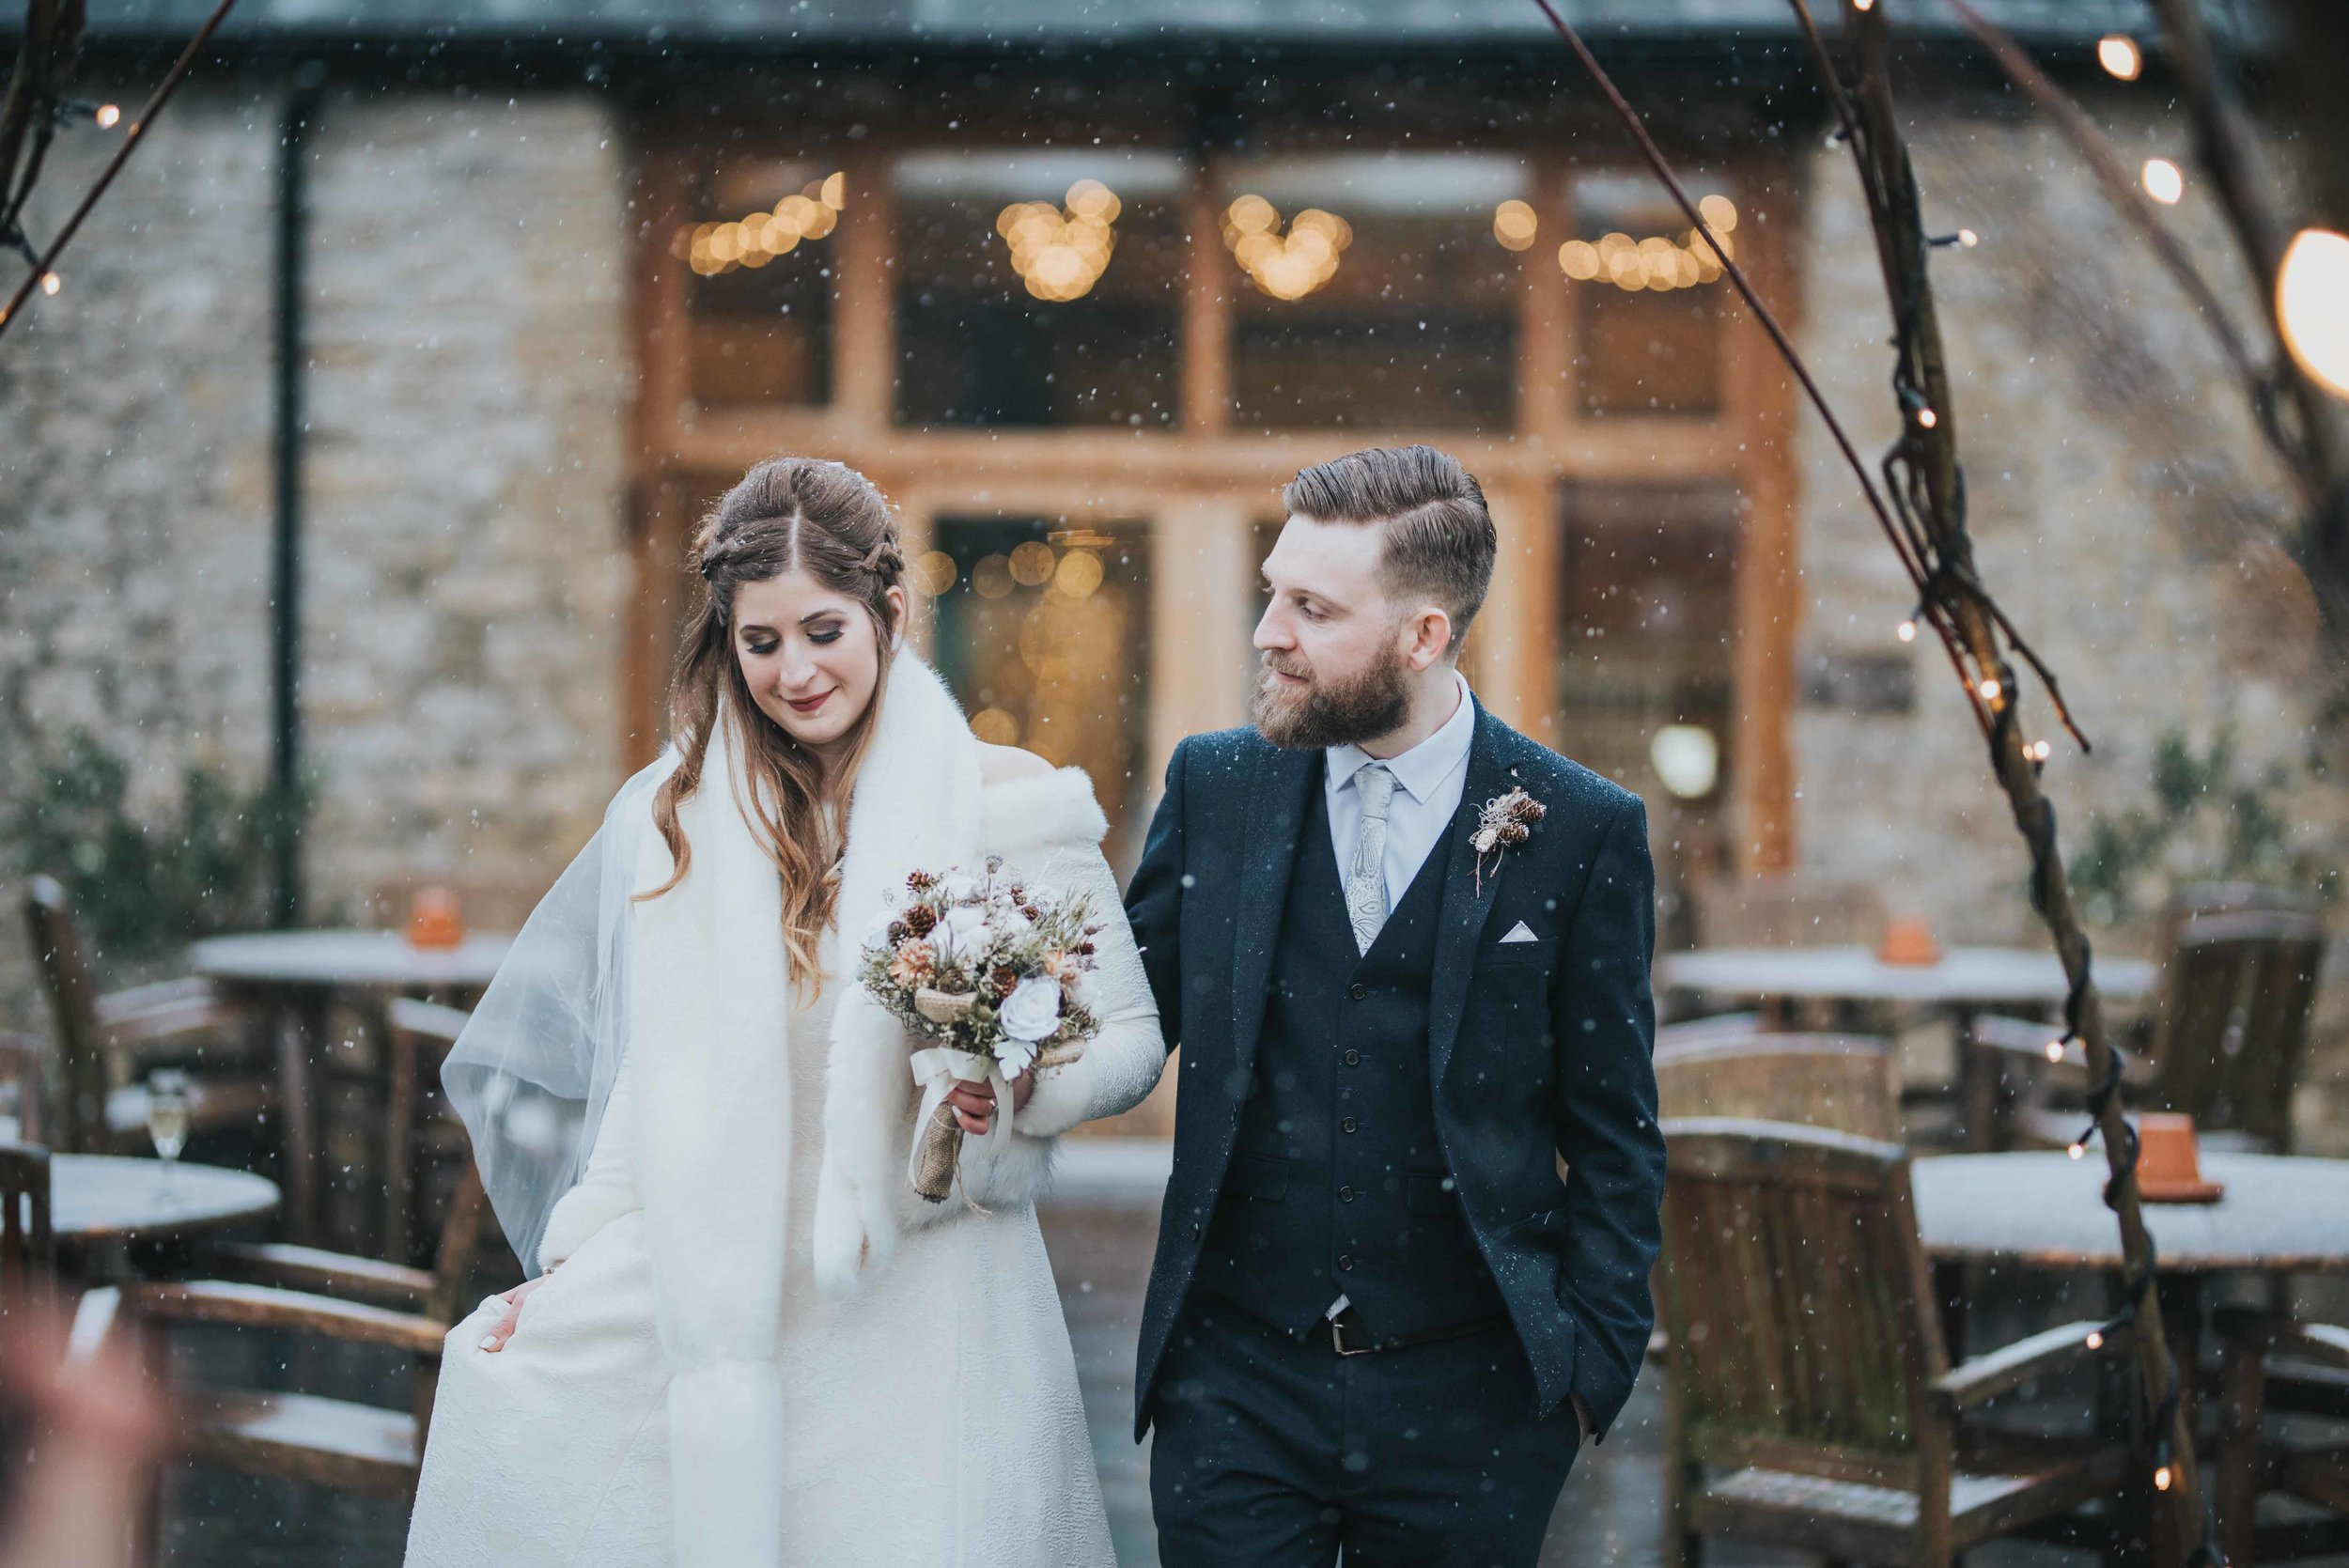 Alex + Carl - Wick Farm, Bath